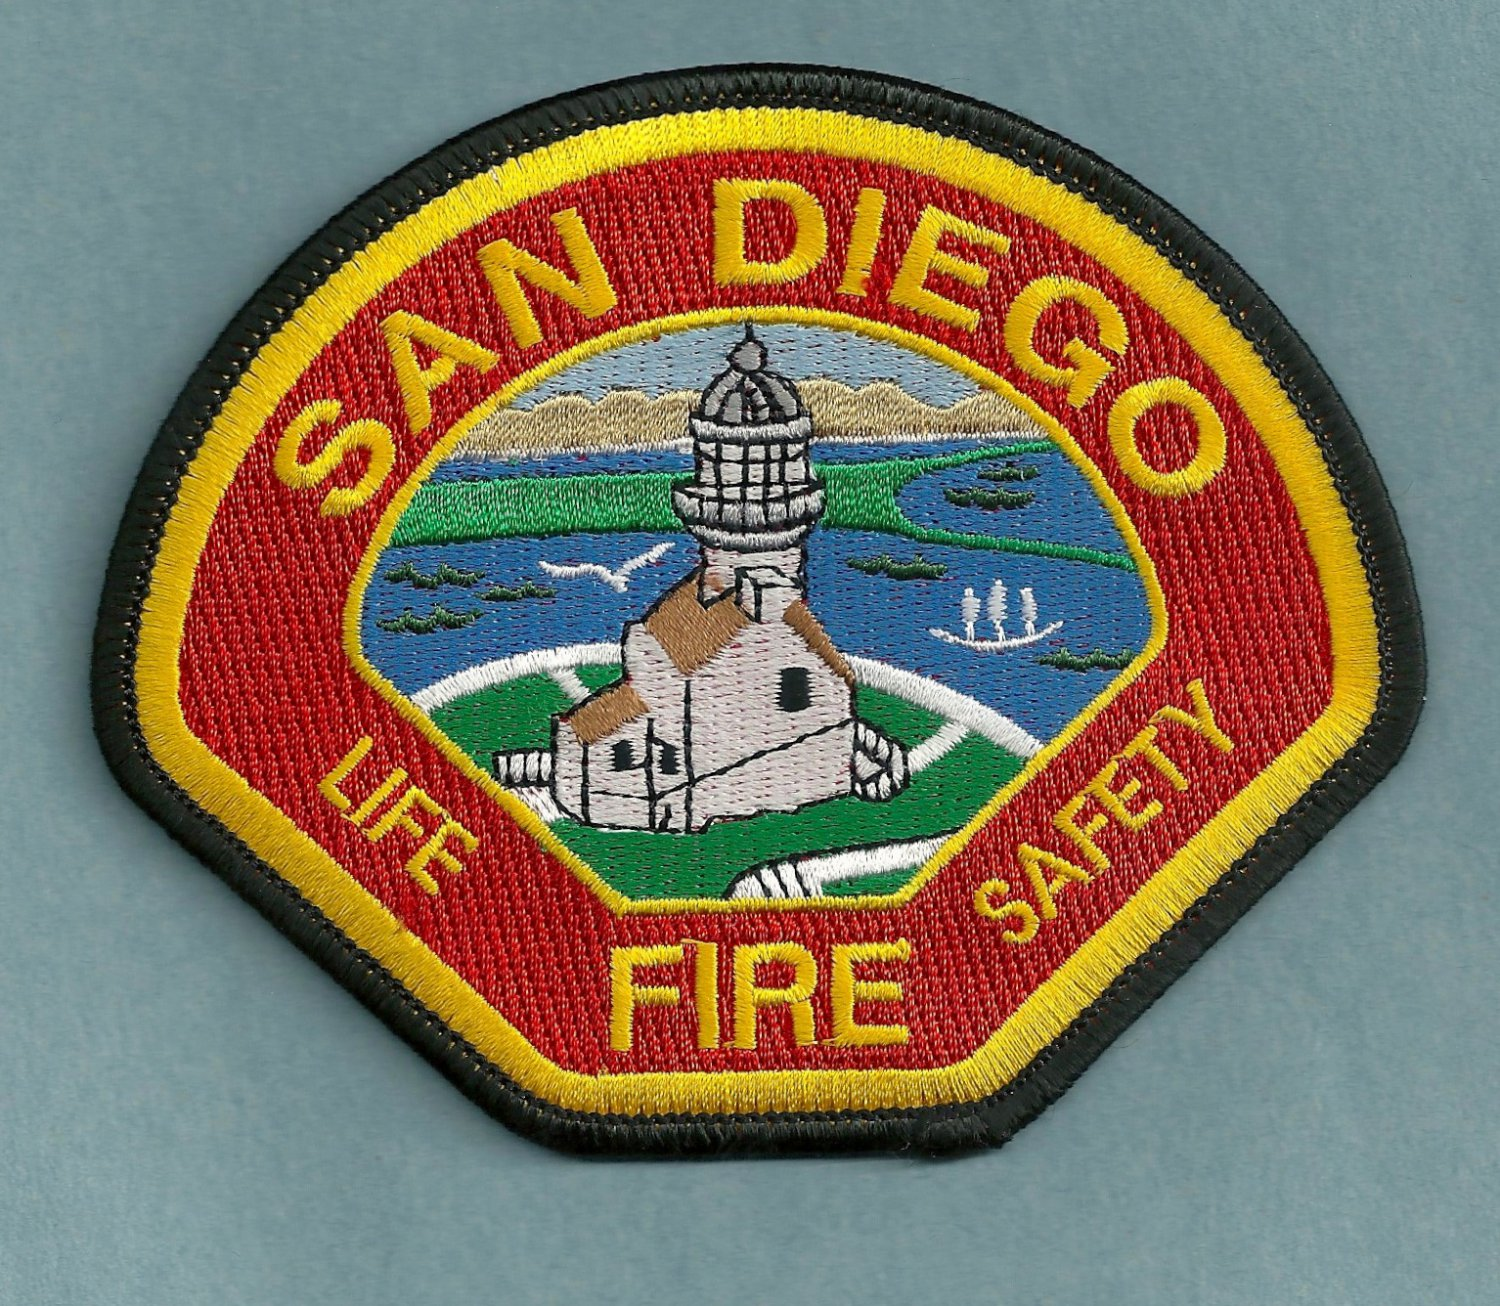 San diego california fire patch for Michaels craft store rancho san diego